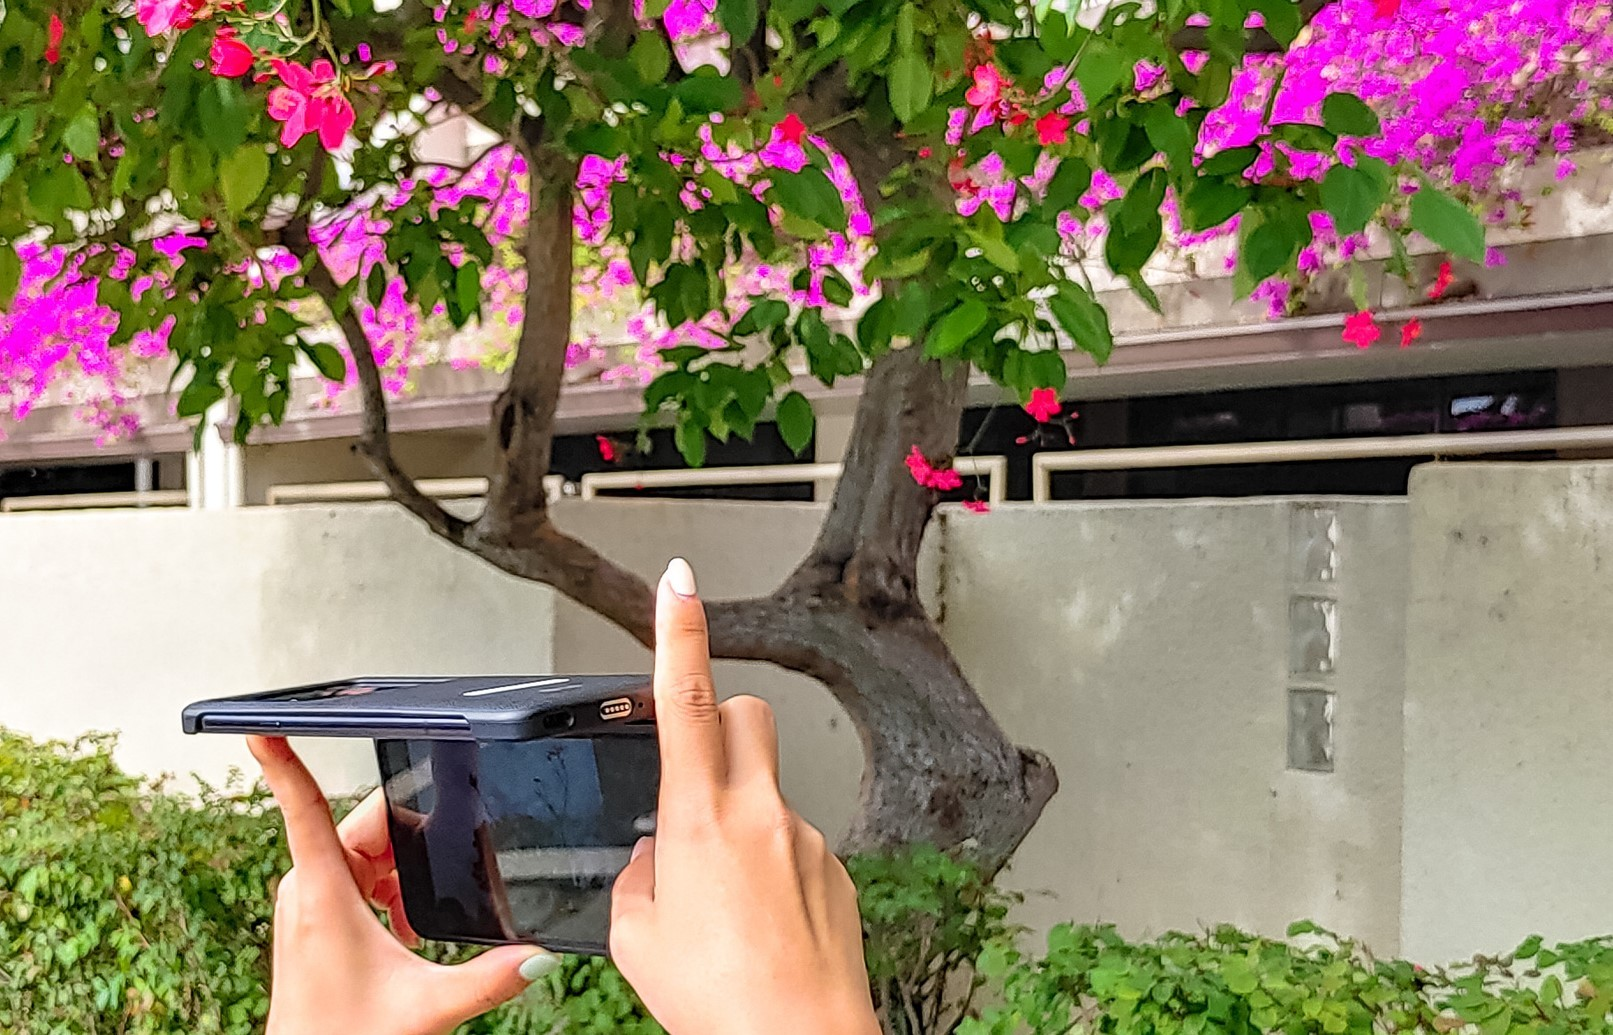 A woman holds up her LG G8X ThinQ in two hands while using the smartphone's second screen to preview her photo of purple flowers at a tilted angle.